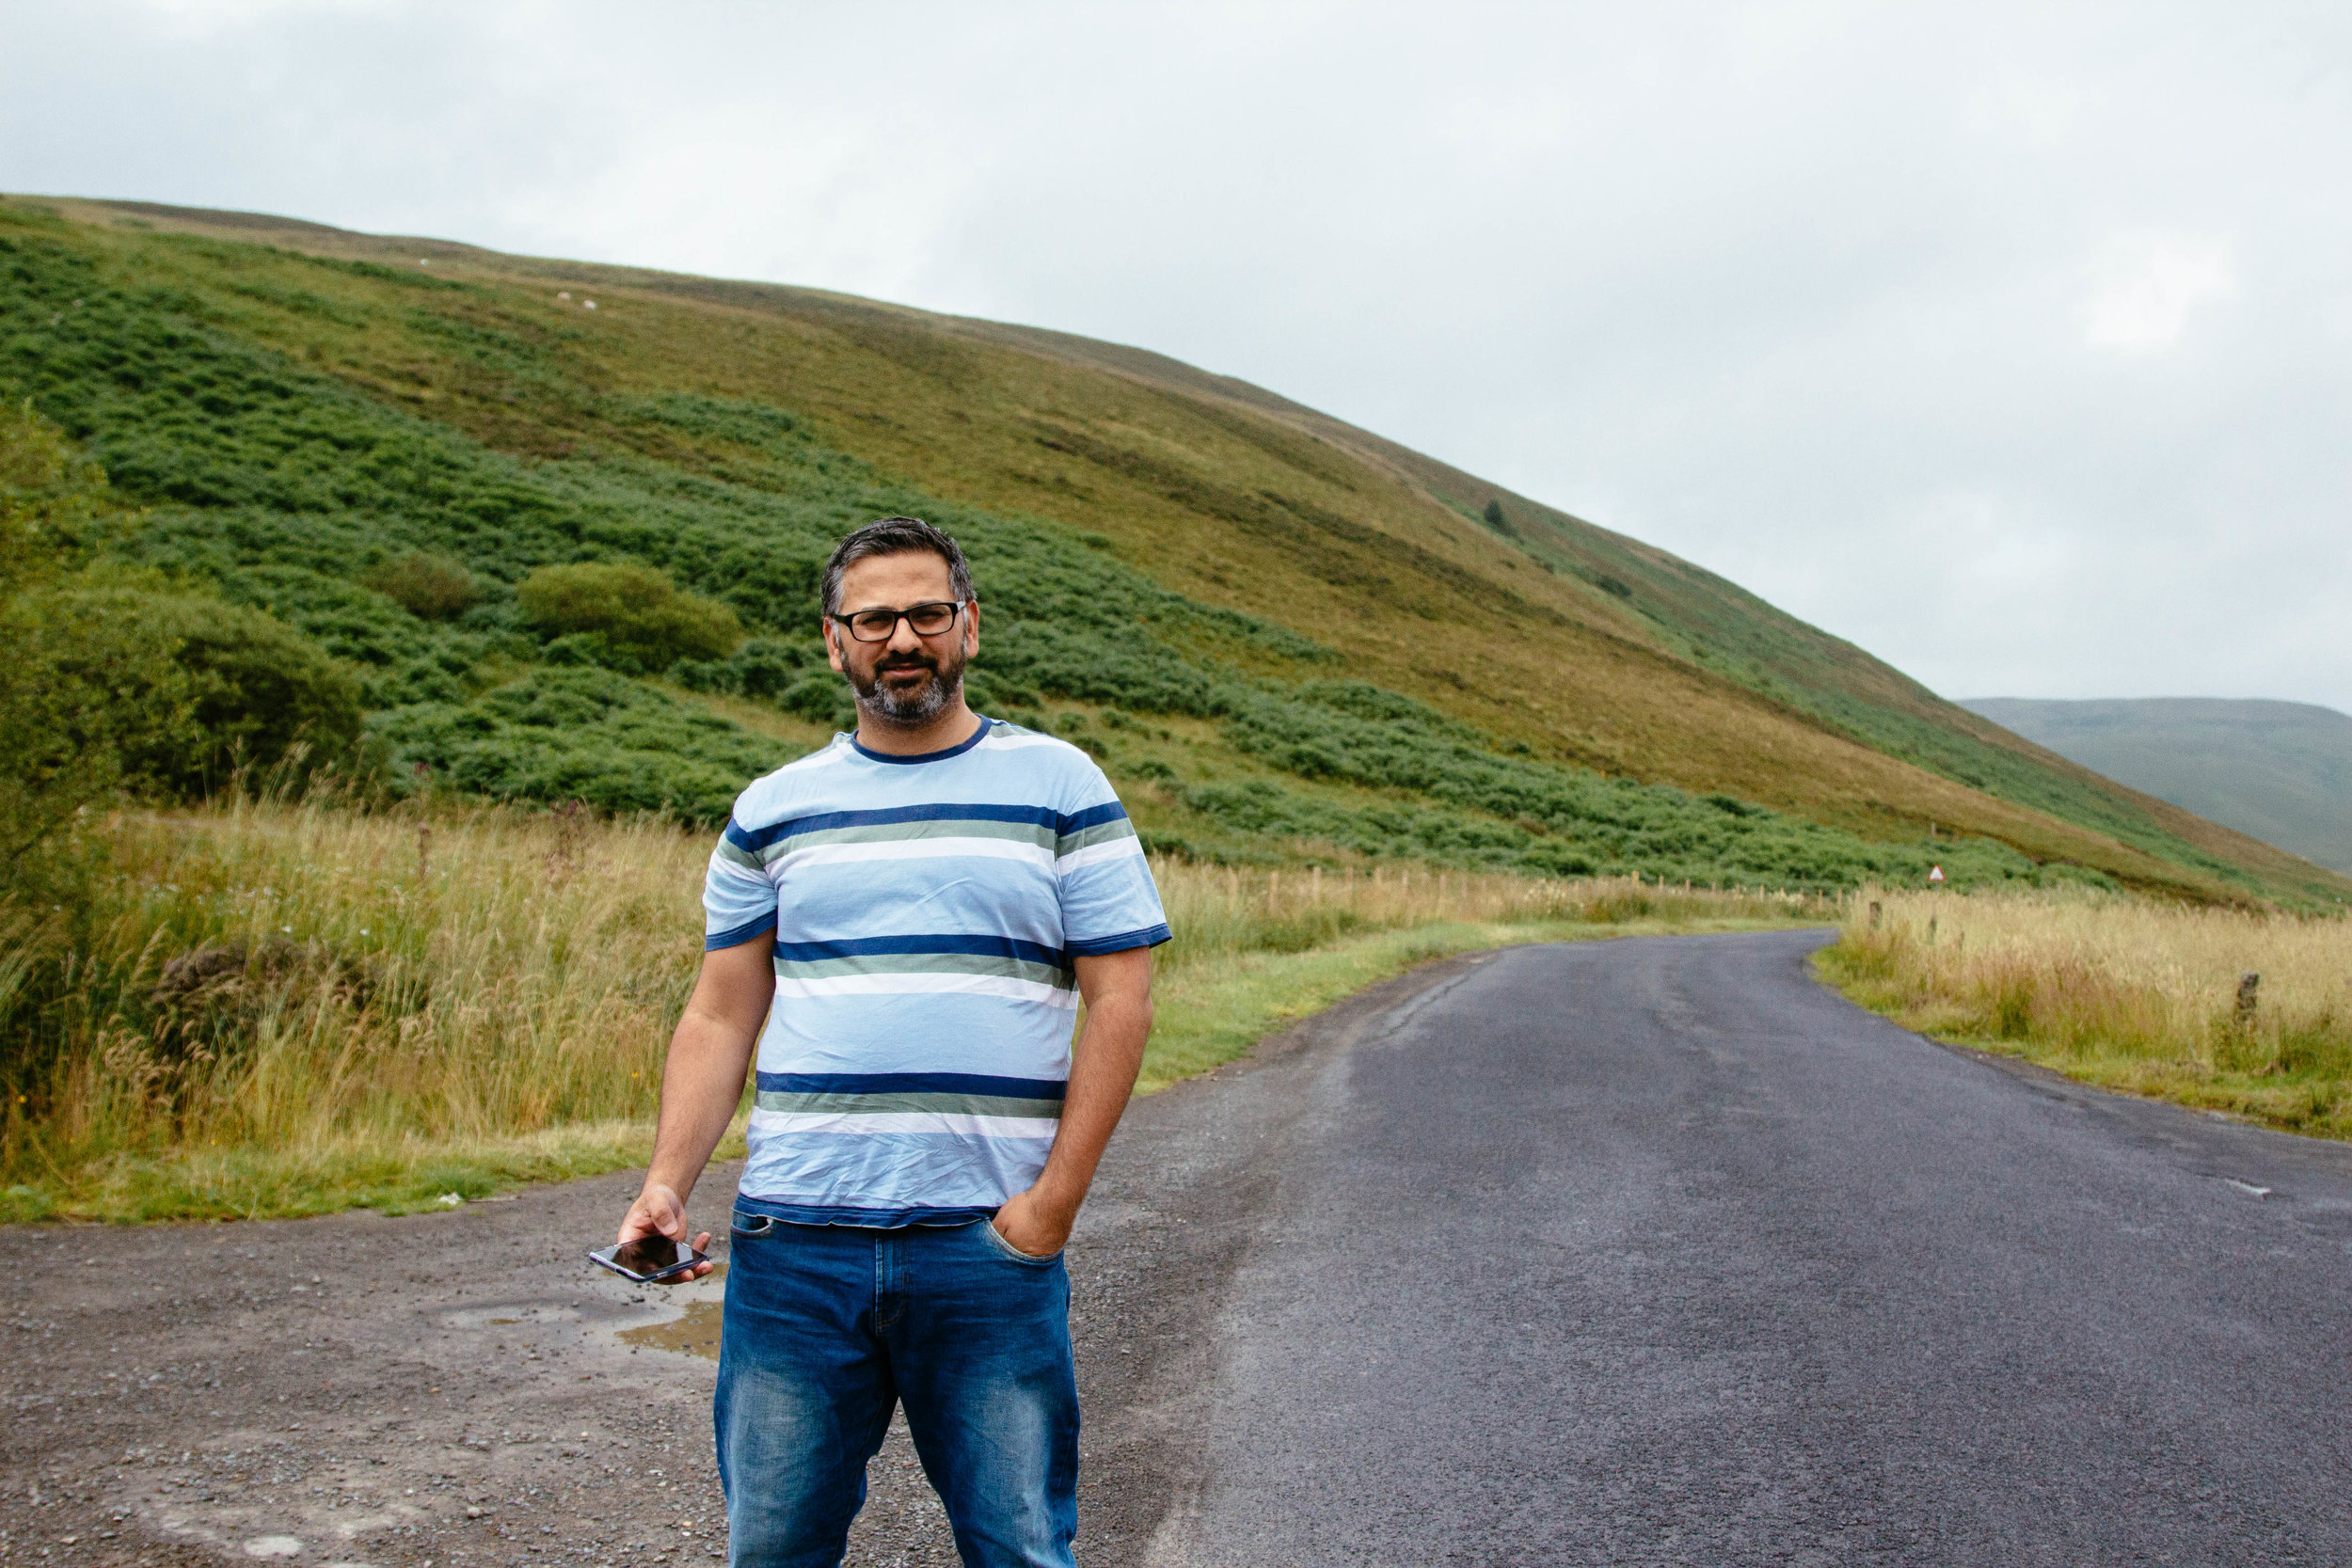 scotlandborder_27july2019-8.jpg